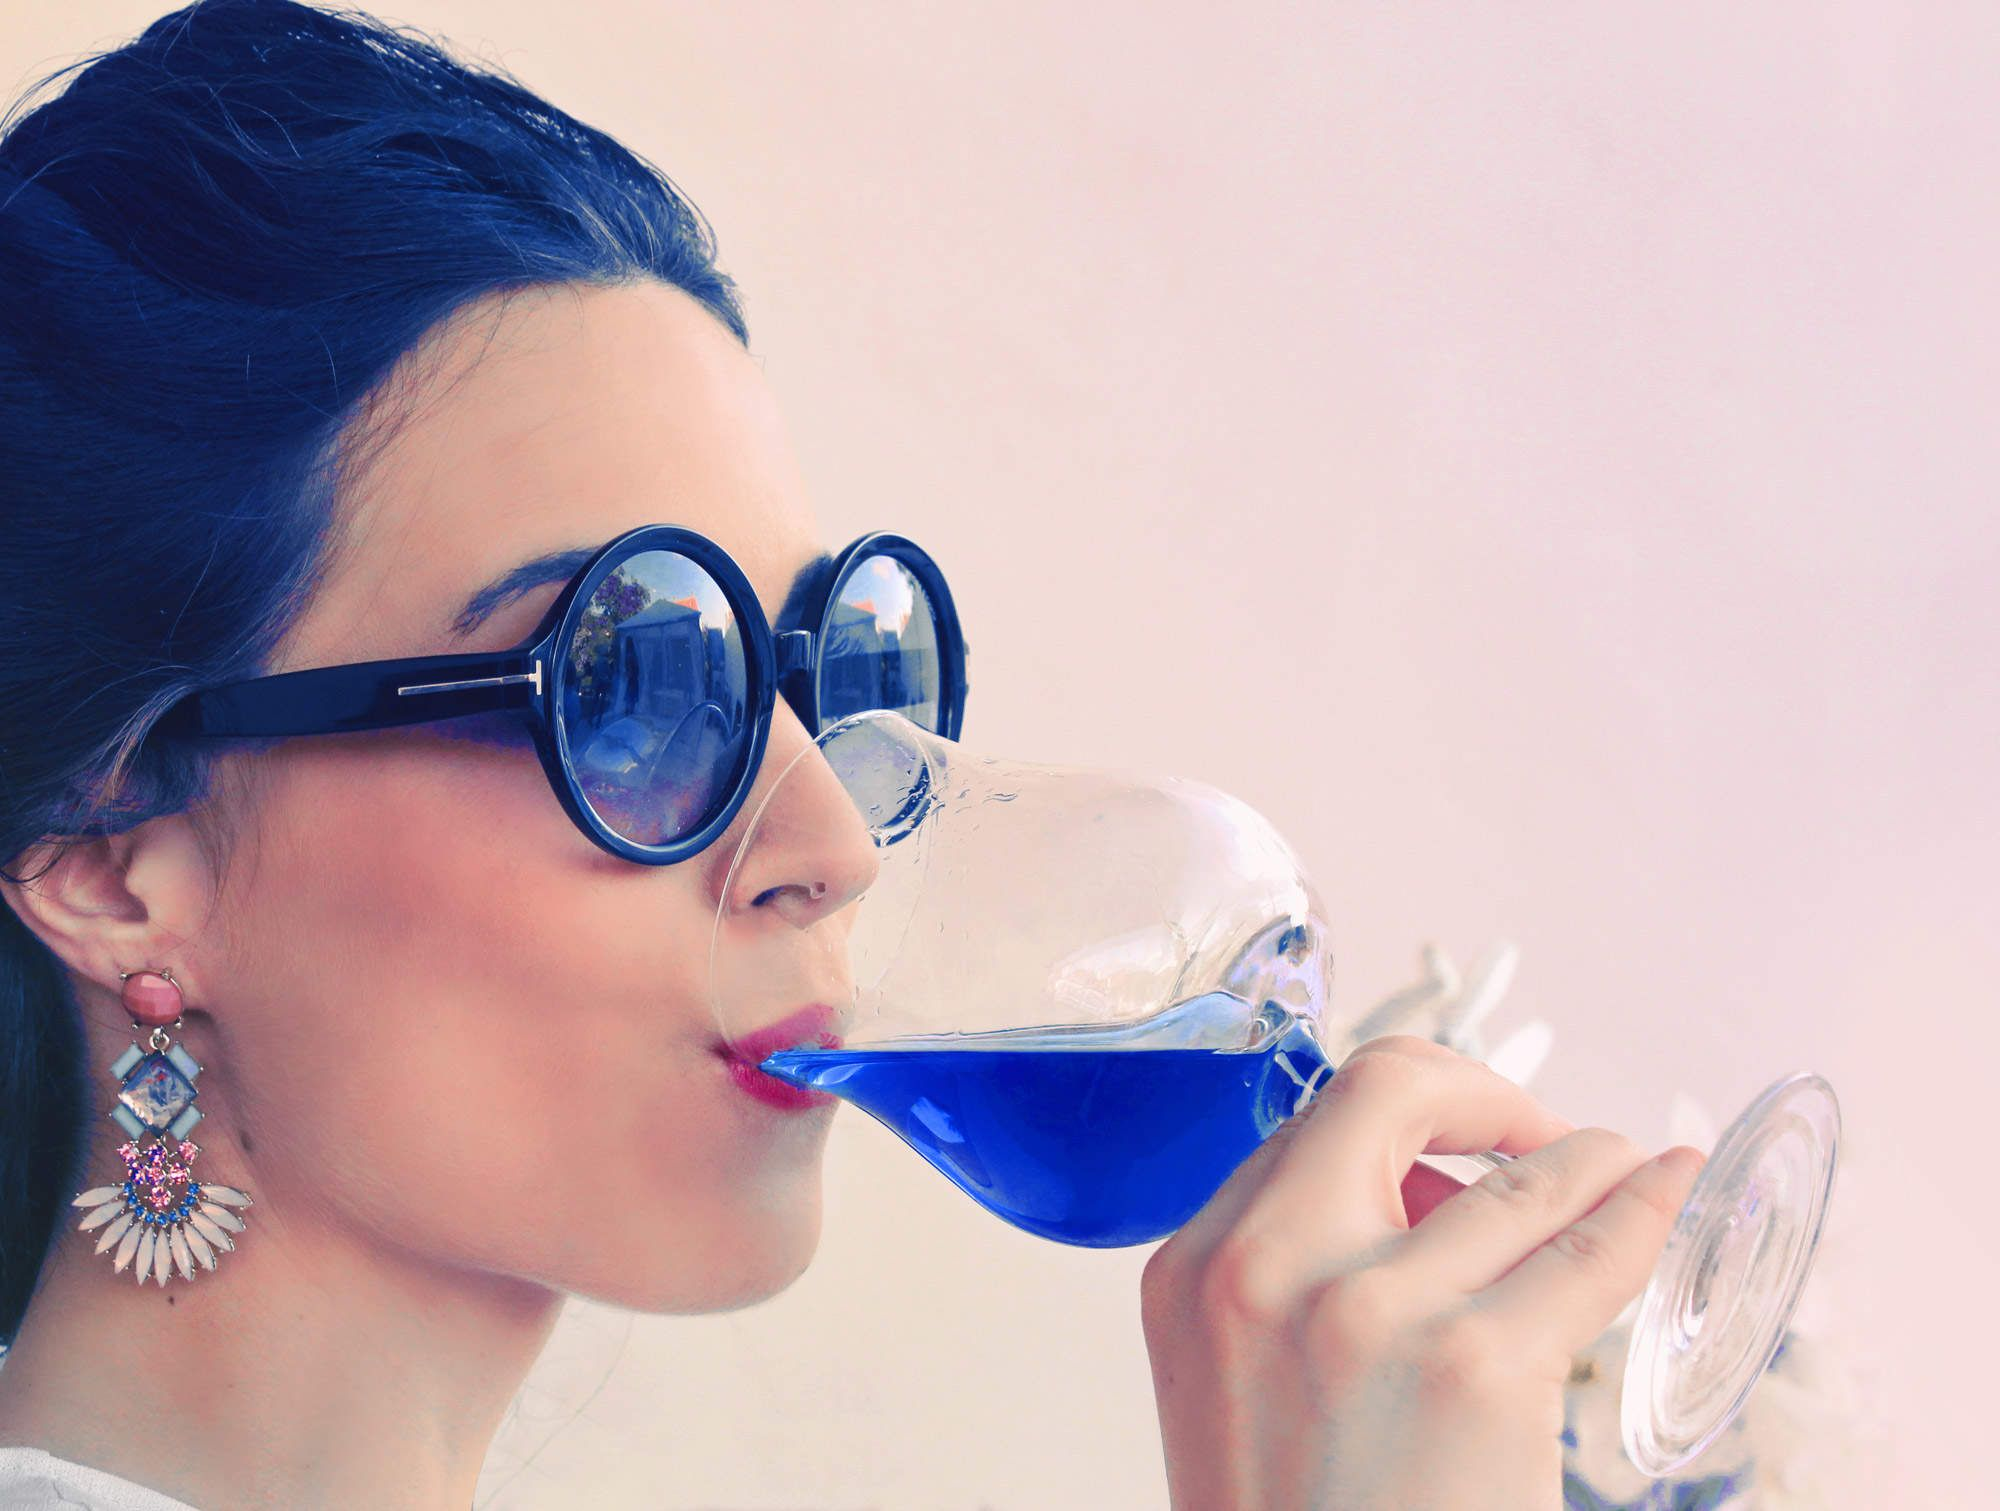 Spanish company Gik has created a blue wine.